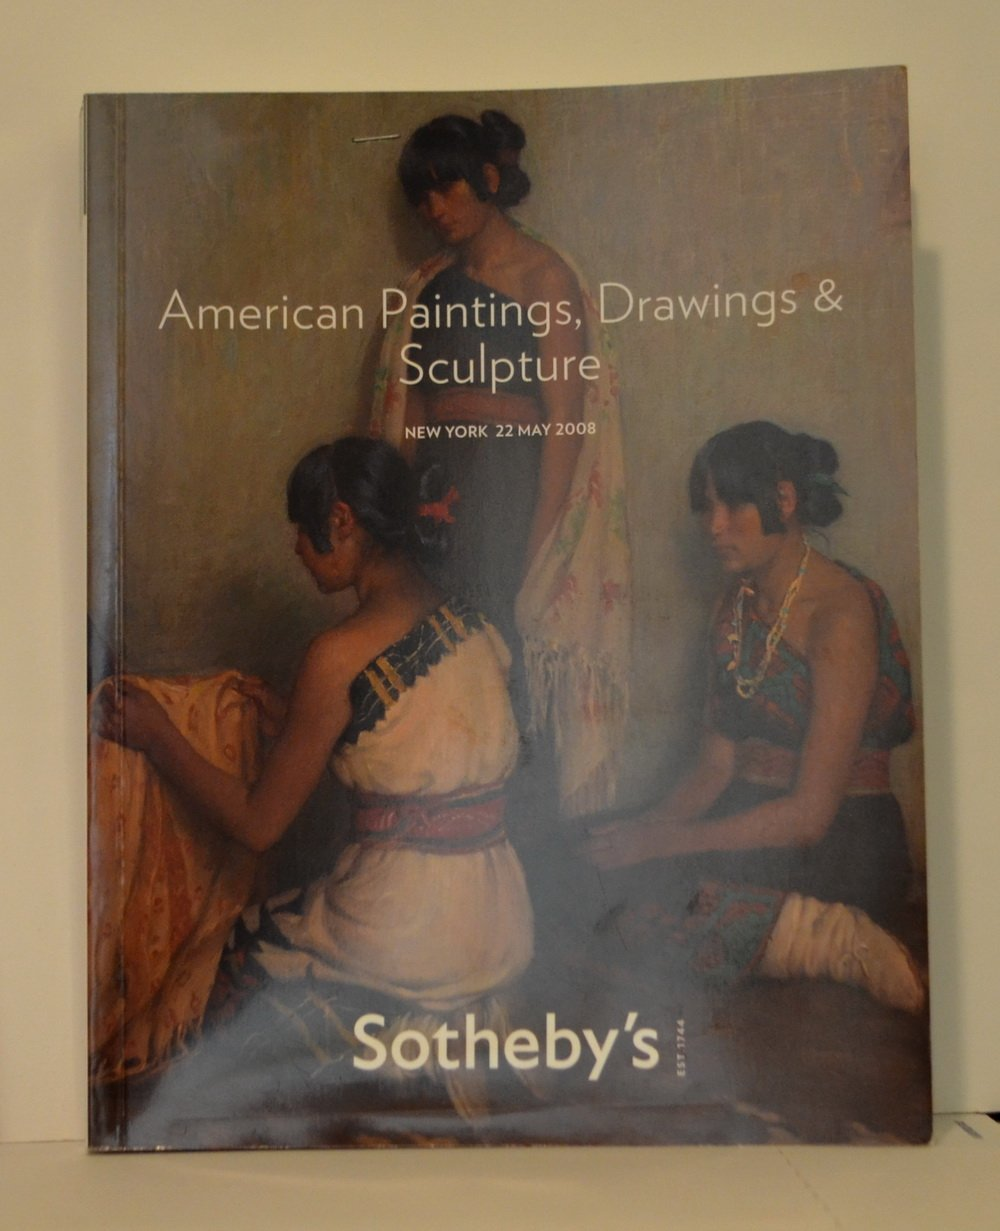 b315 Sotheby's Auction / American Paintings, Drawings & Sculpture / New York 2008